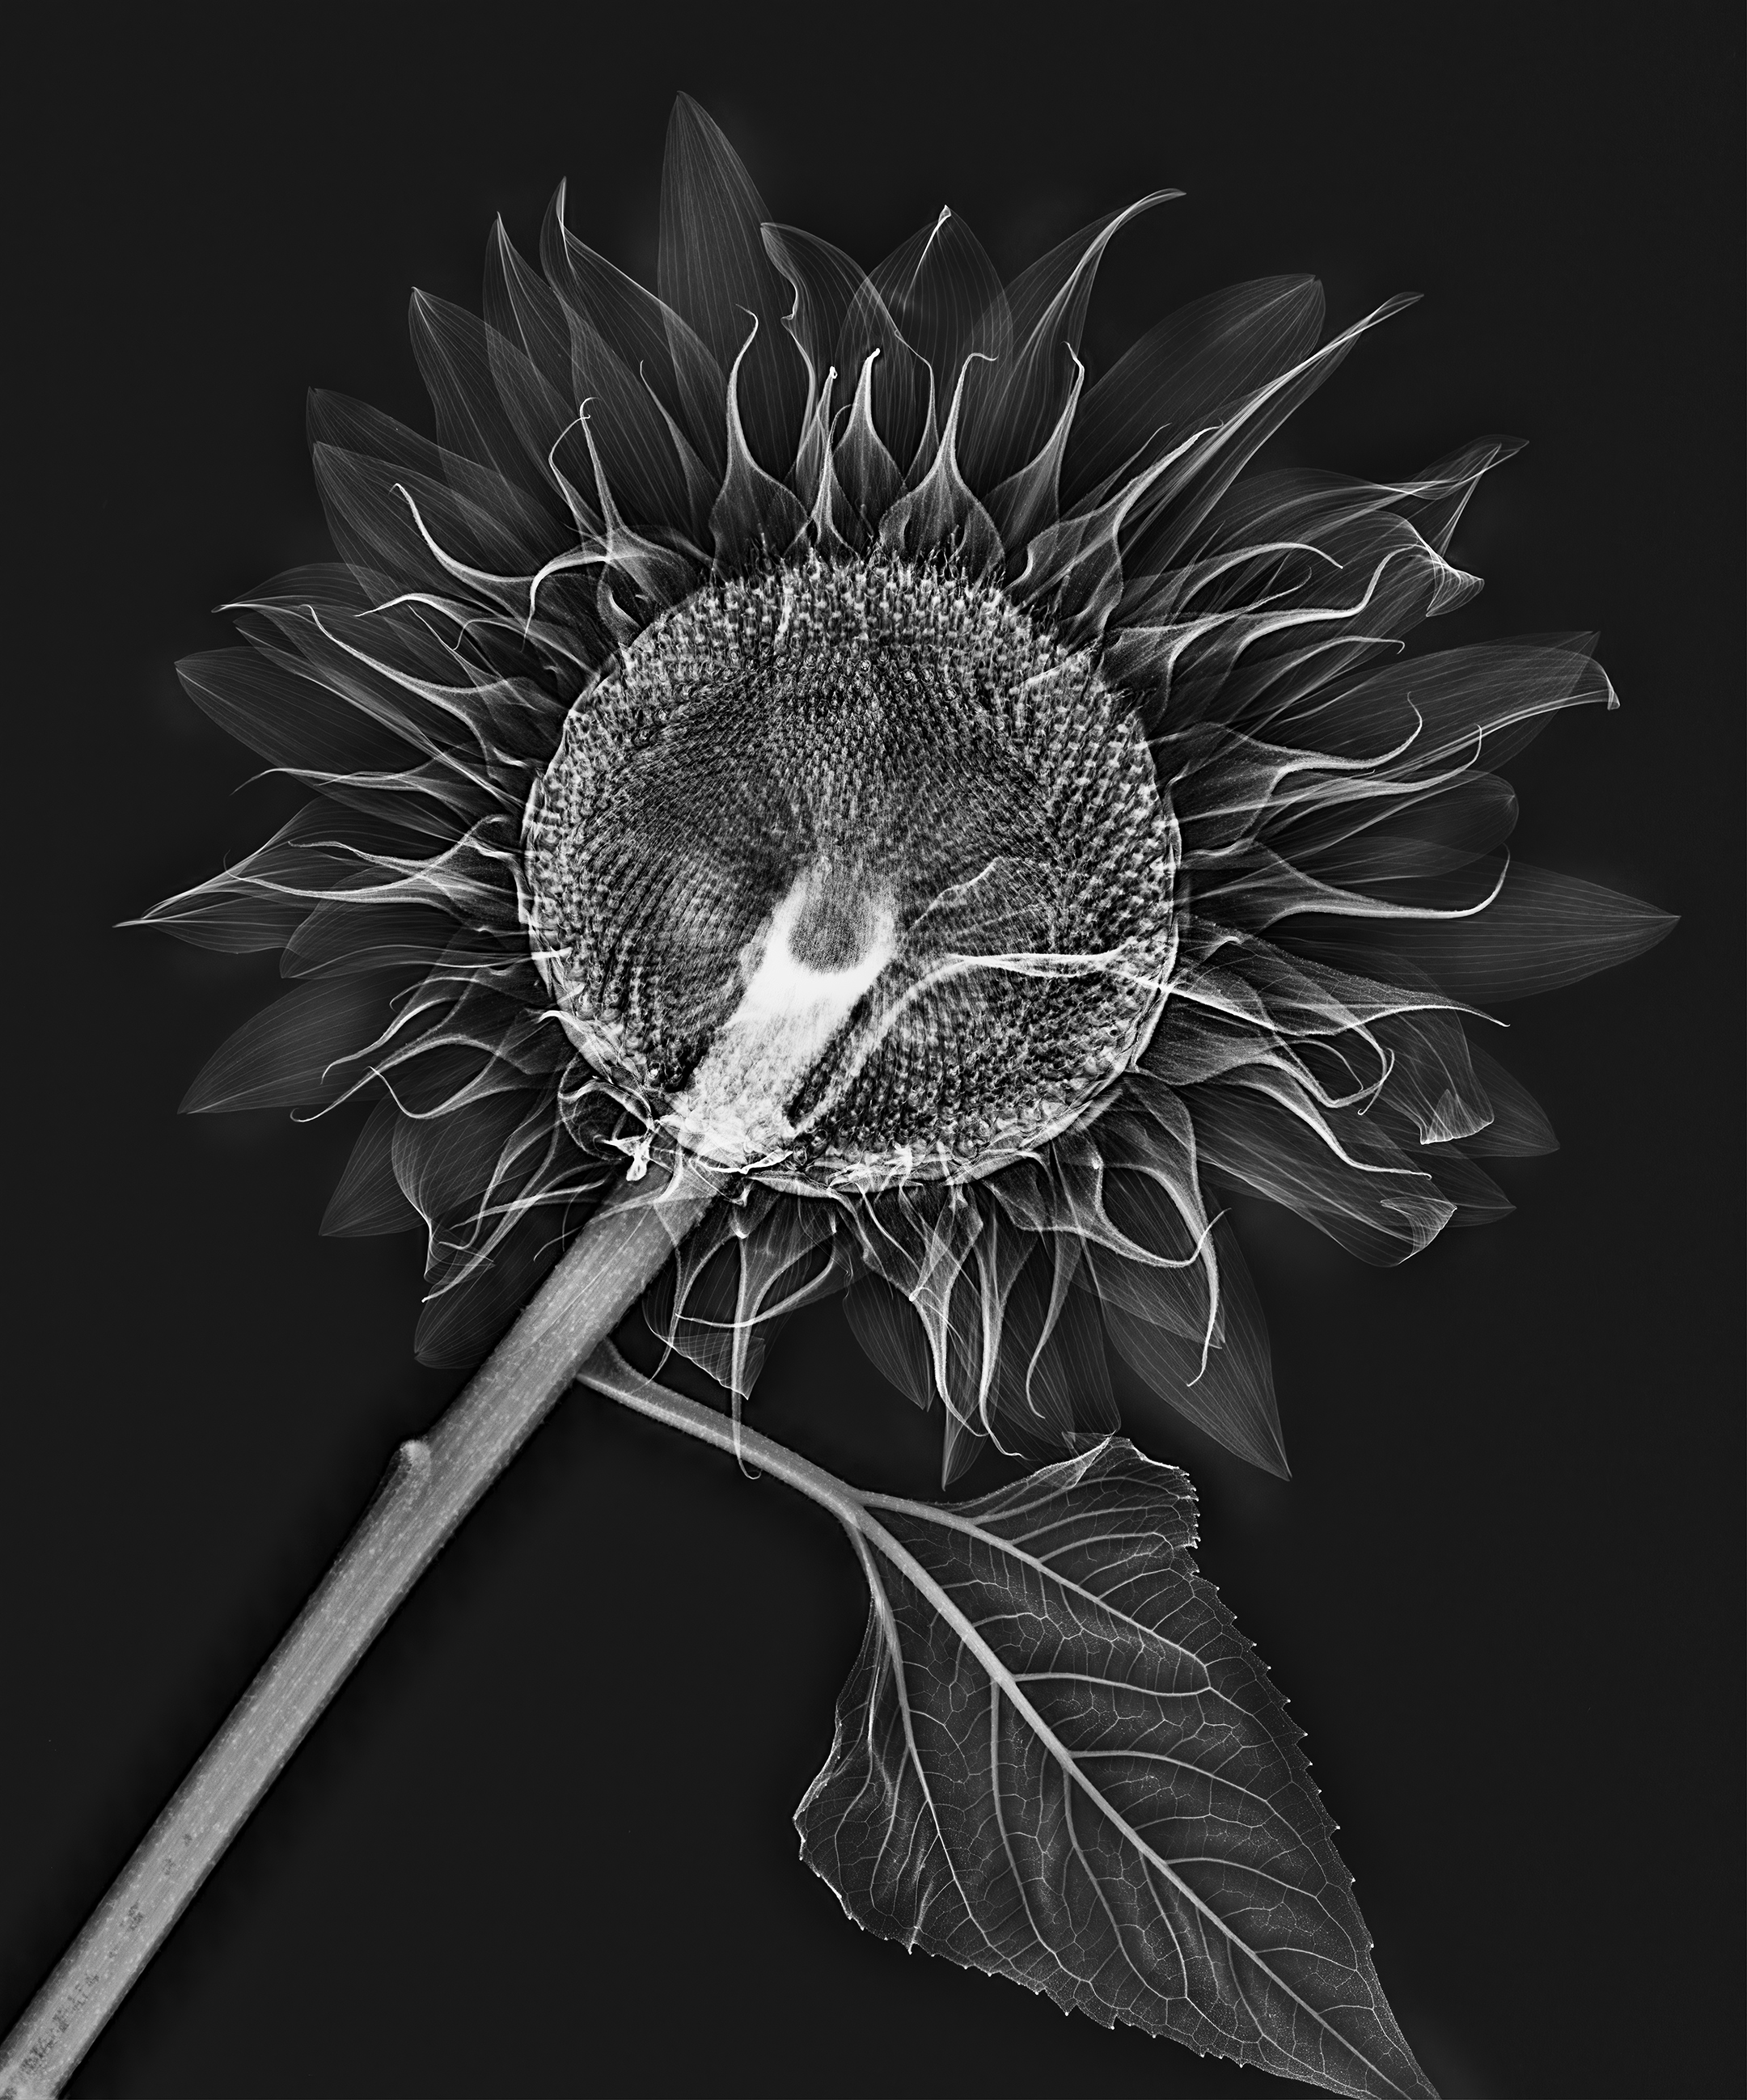 X-Ray, Sunflower © Harold Davis